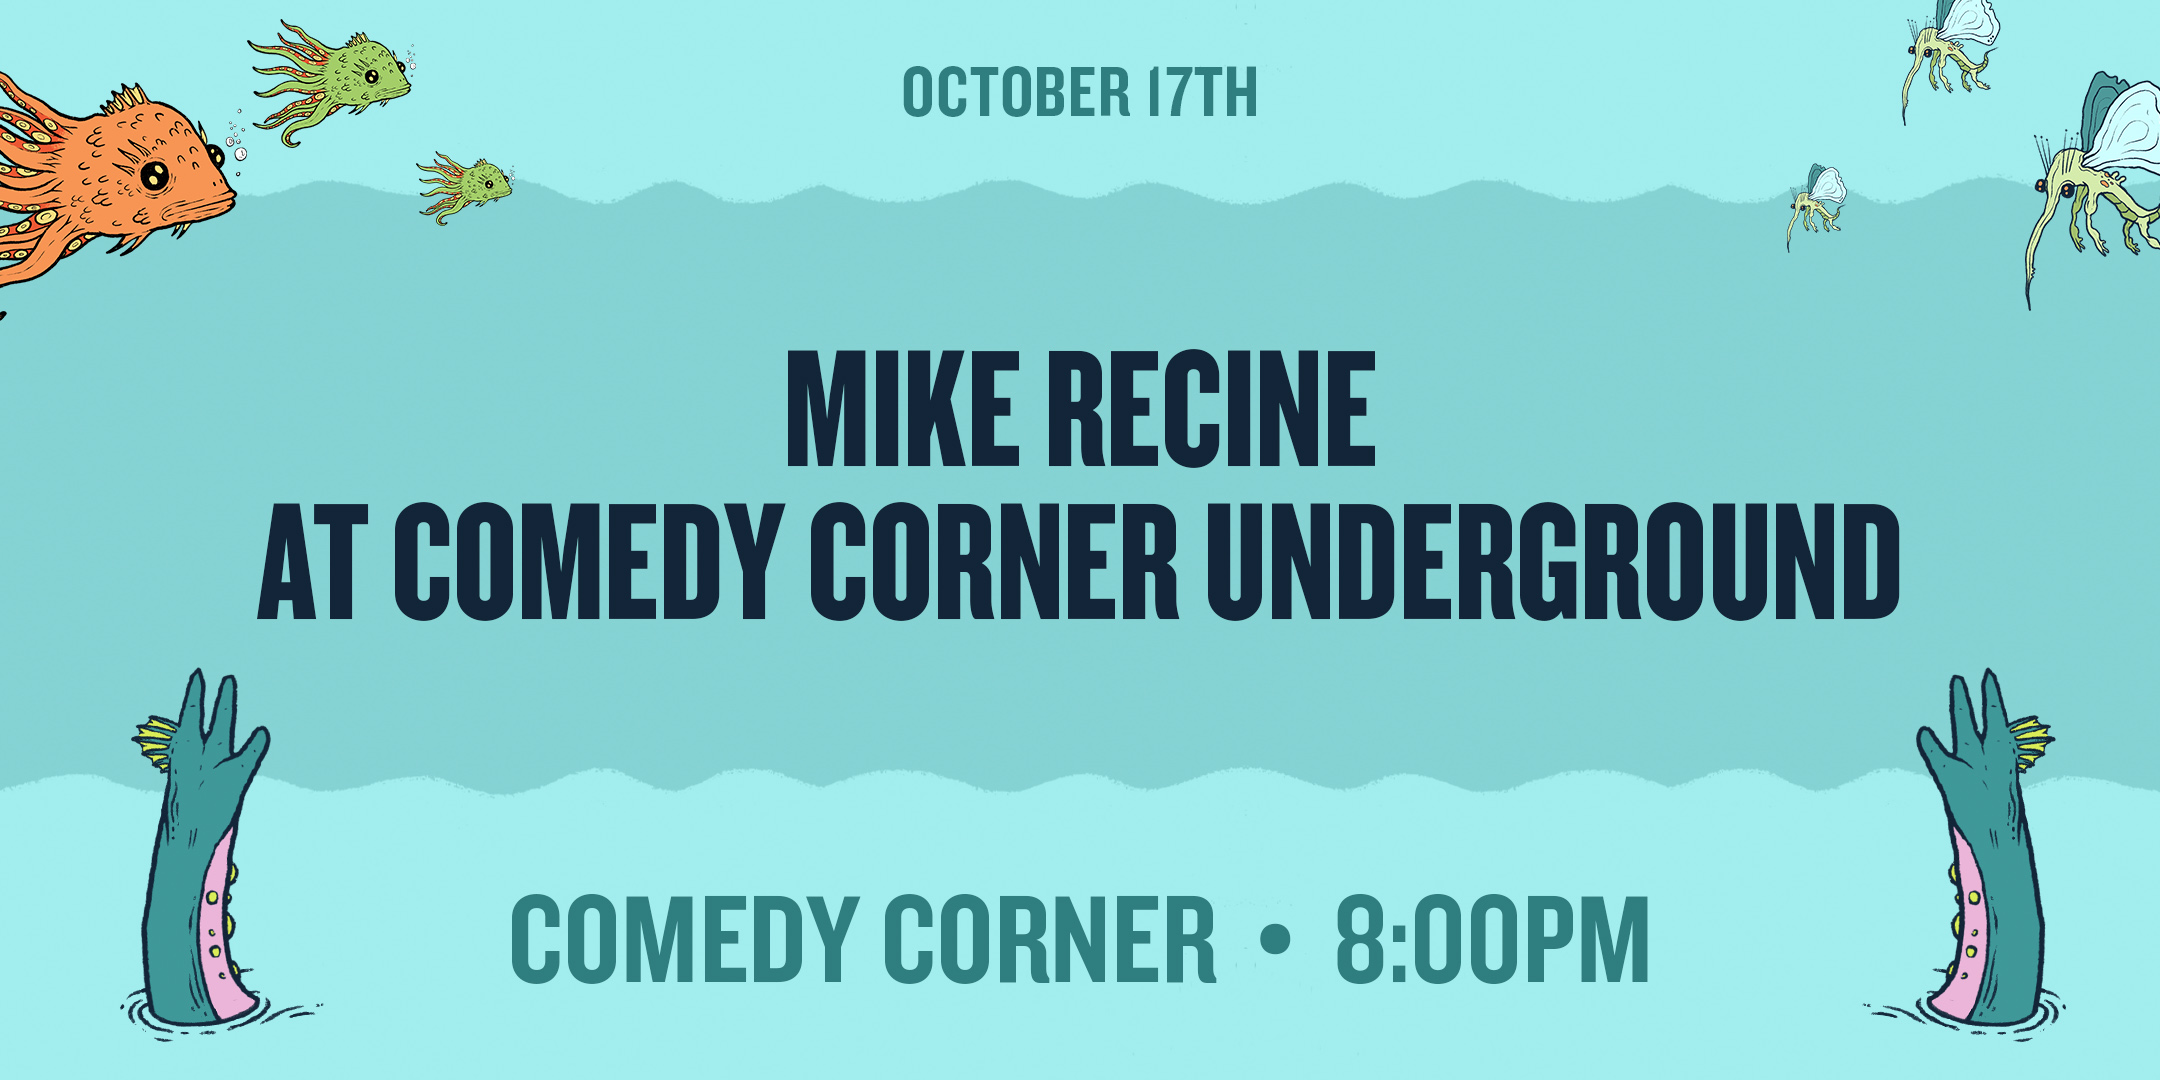 OCT17-Mike Recine at Comedy Corner.jpg